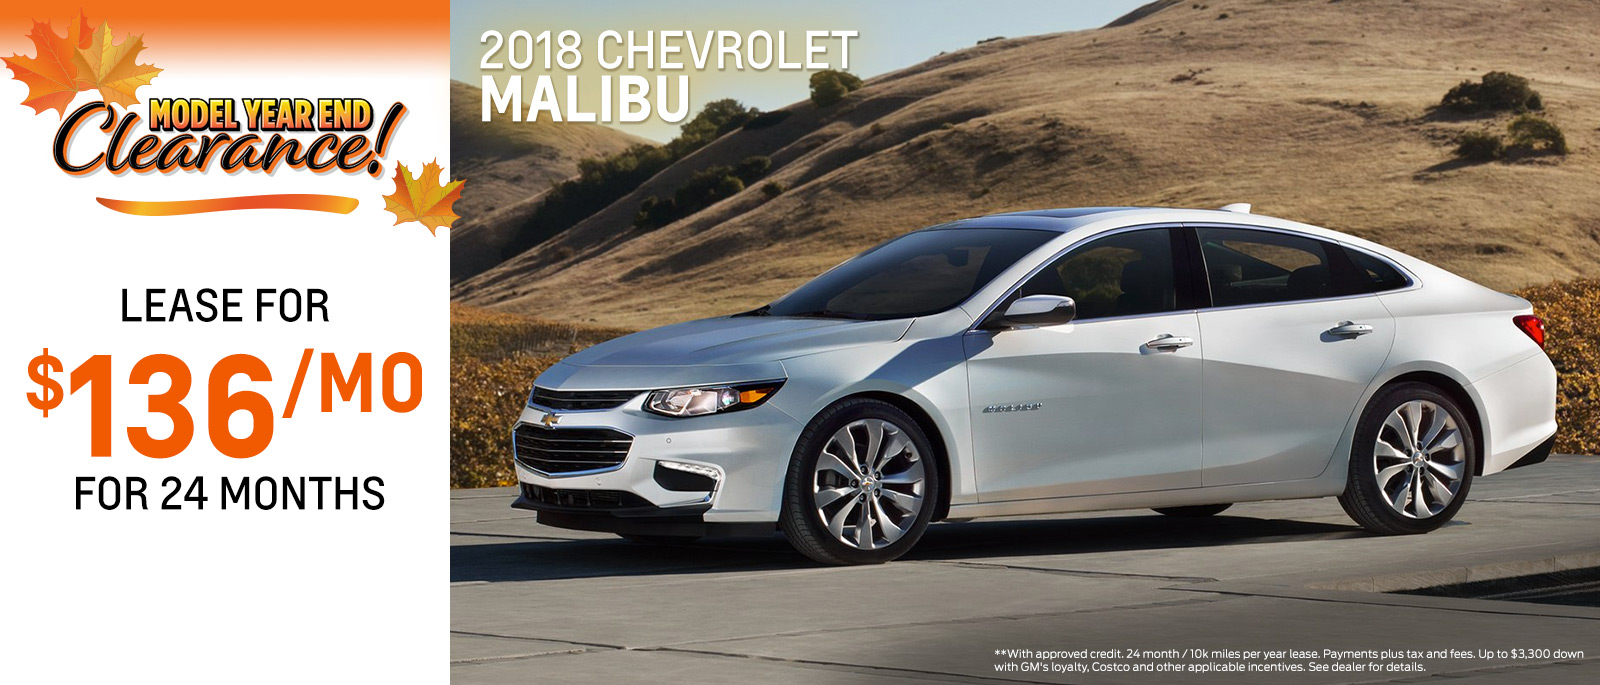 New 2018 Chevrolet Malibu | Chevy Dealership in Indianapolis, IN